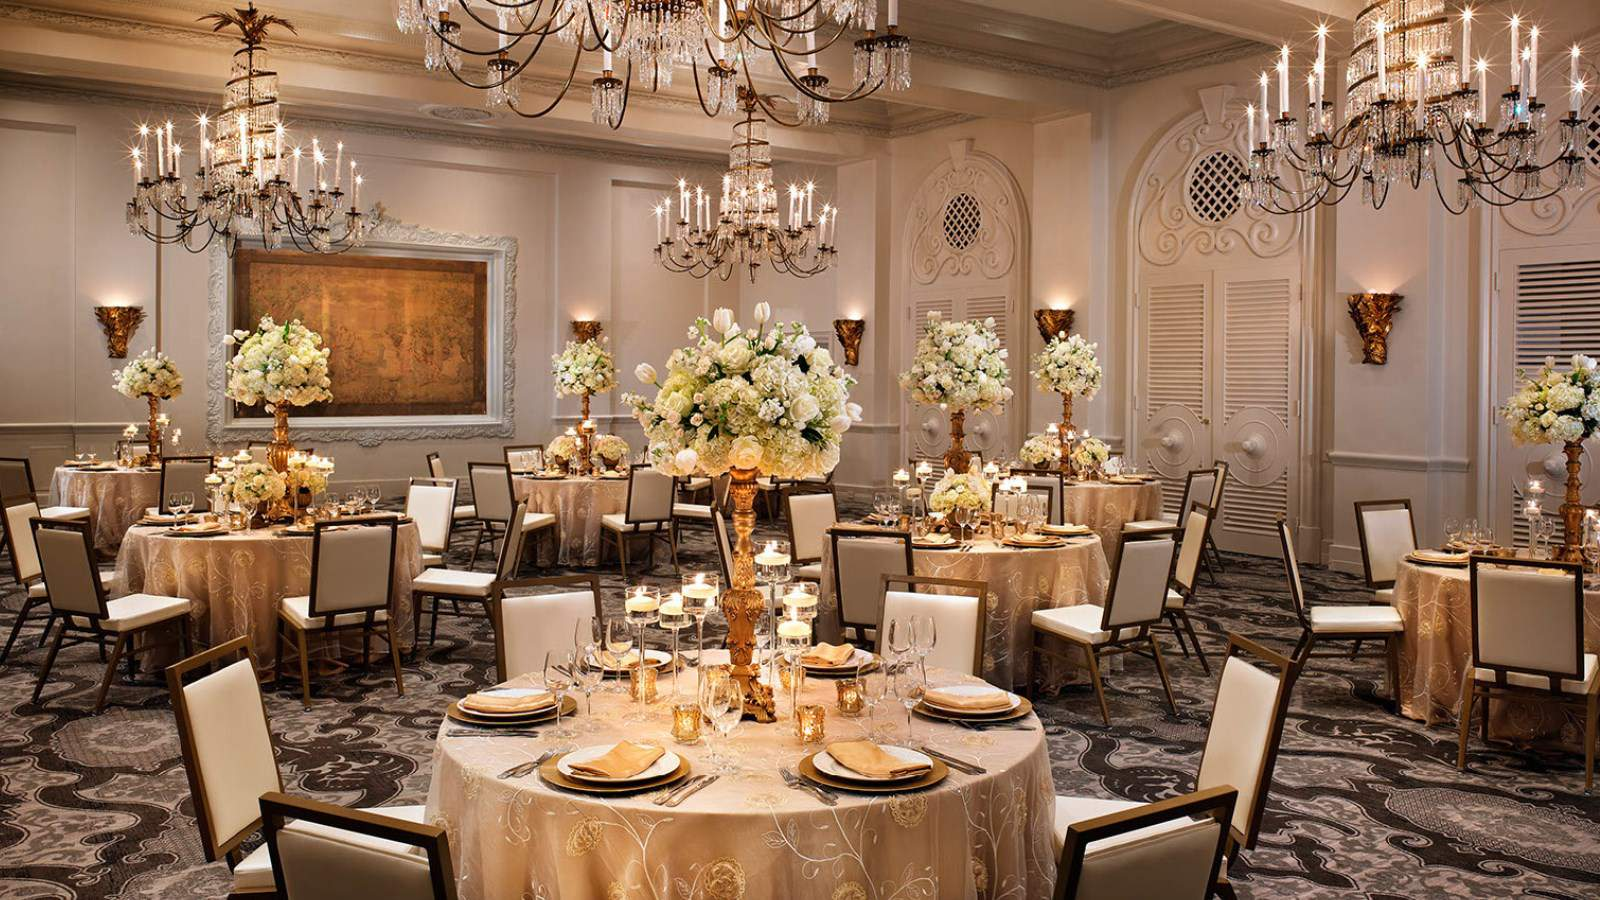 Historic glamorous san antonio wedding venue st peraux ballroom junglespirit Image collections